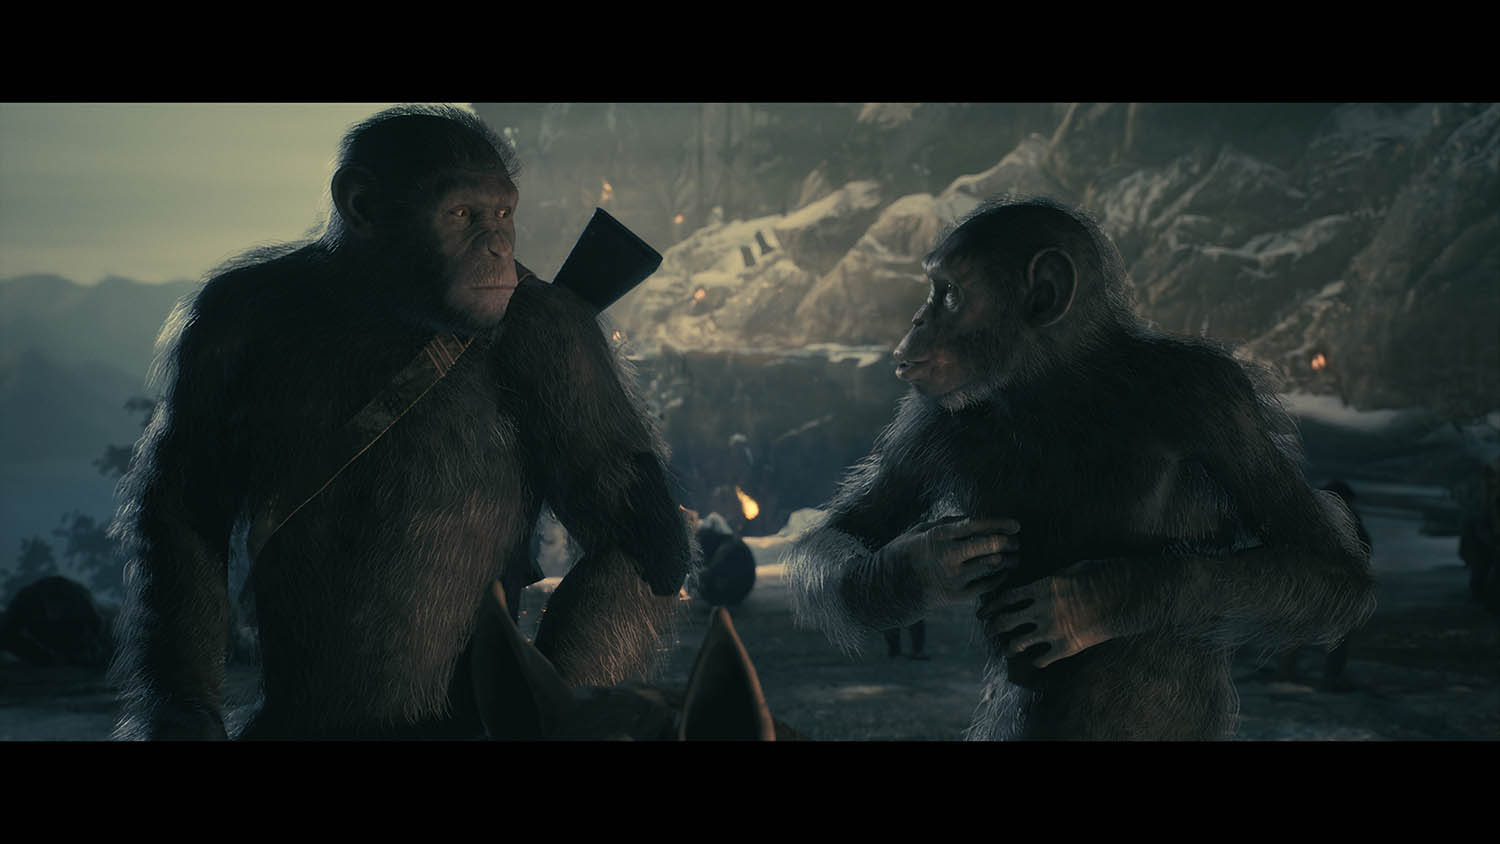 Planet of the Apes: Last Frontier se lanzará el 21 de noviembre con PlayLink